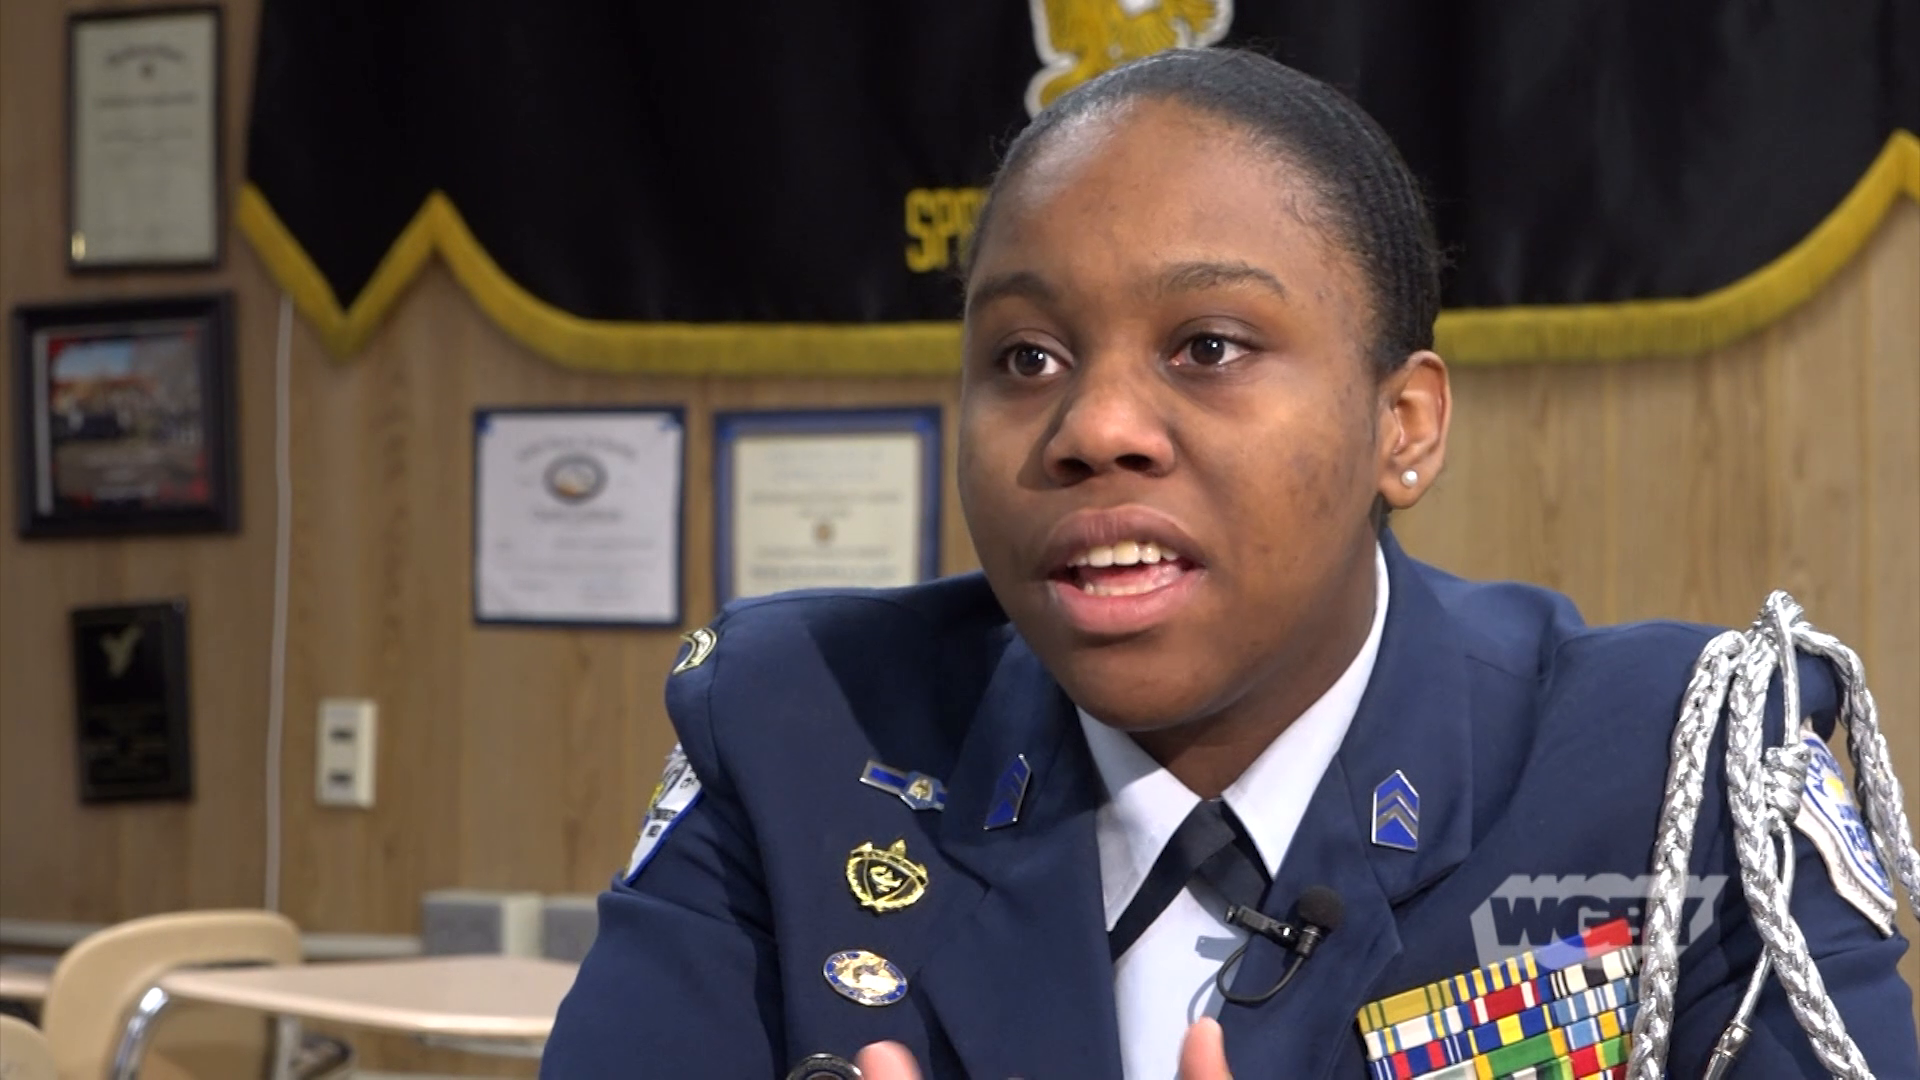 WATCH: Meet Central High Senior Camryn Kynard, who made history as the first African American female commander of the school's ROTC program.